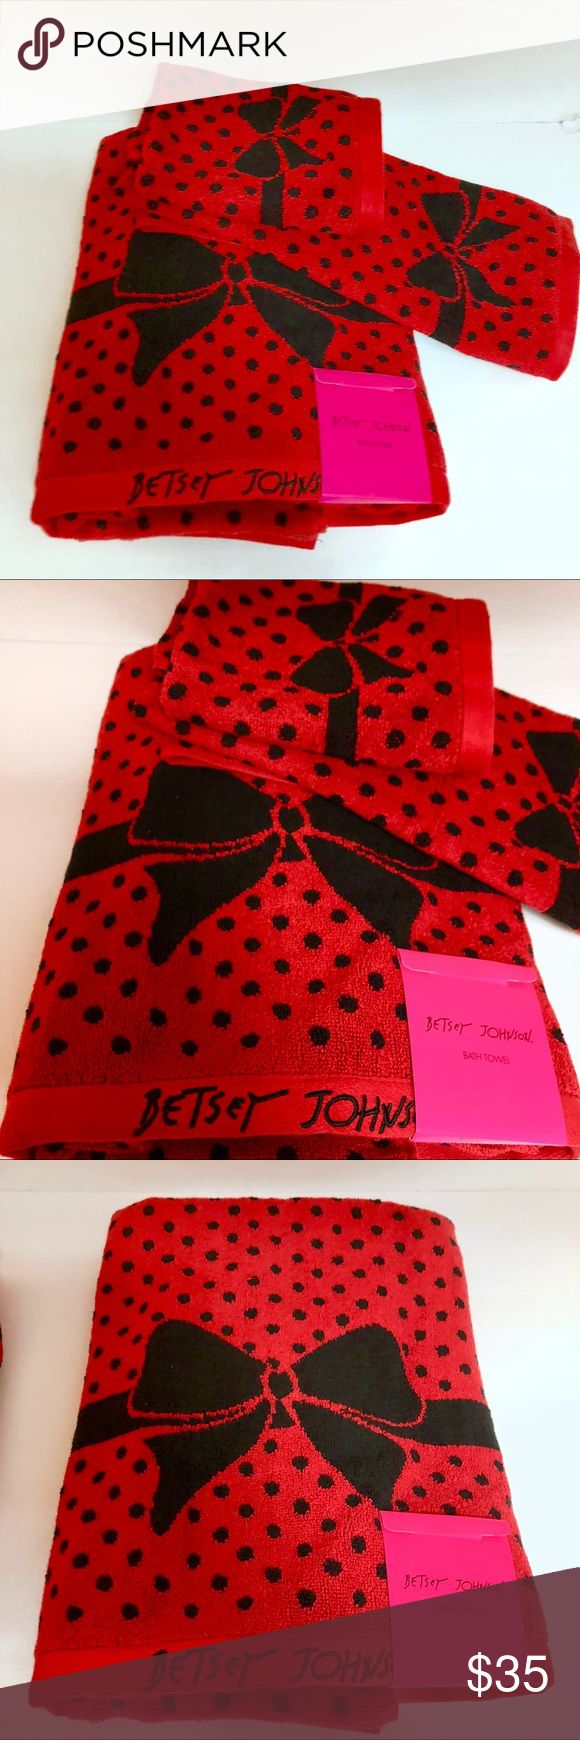 🎉SALE🎉Betsey Johnson holiday towel set This 3 piece red bow holiday towel set by Betsey Johnson is sure to be a hit this season ! Three piece set includes 1- bath towel , 1- hand towel and 1- wash cloth ! Beautiful red with large black bow . Makes a great gift ! Only two available ! Betsey Johnson Accessories